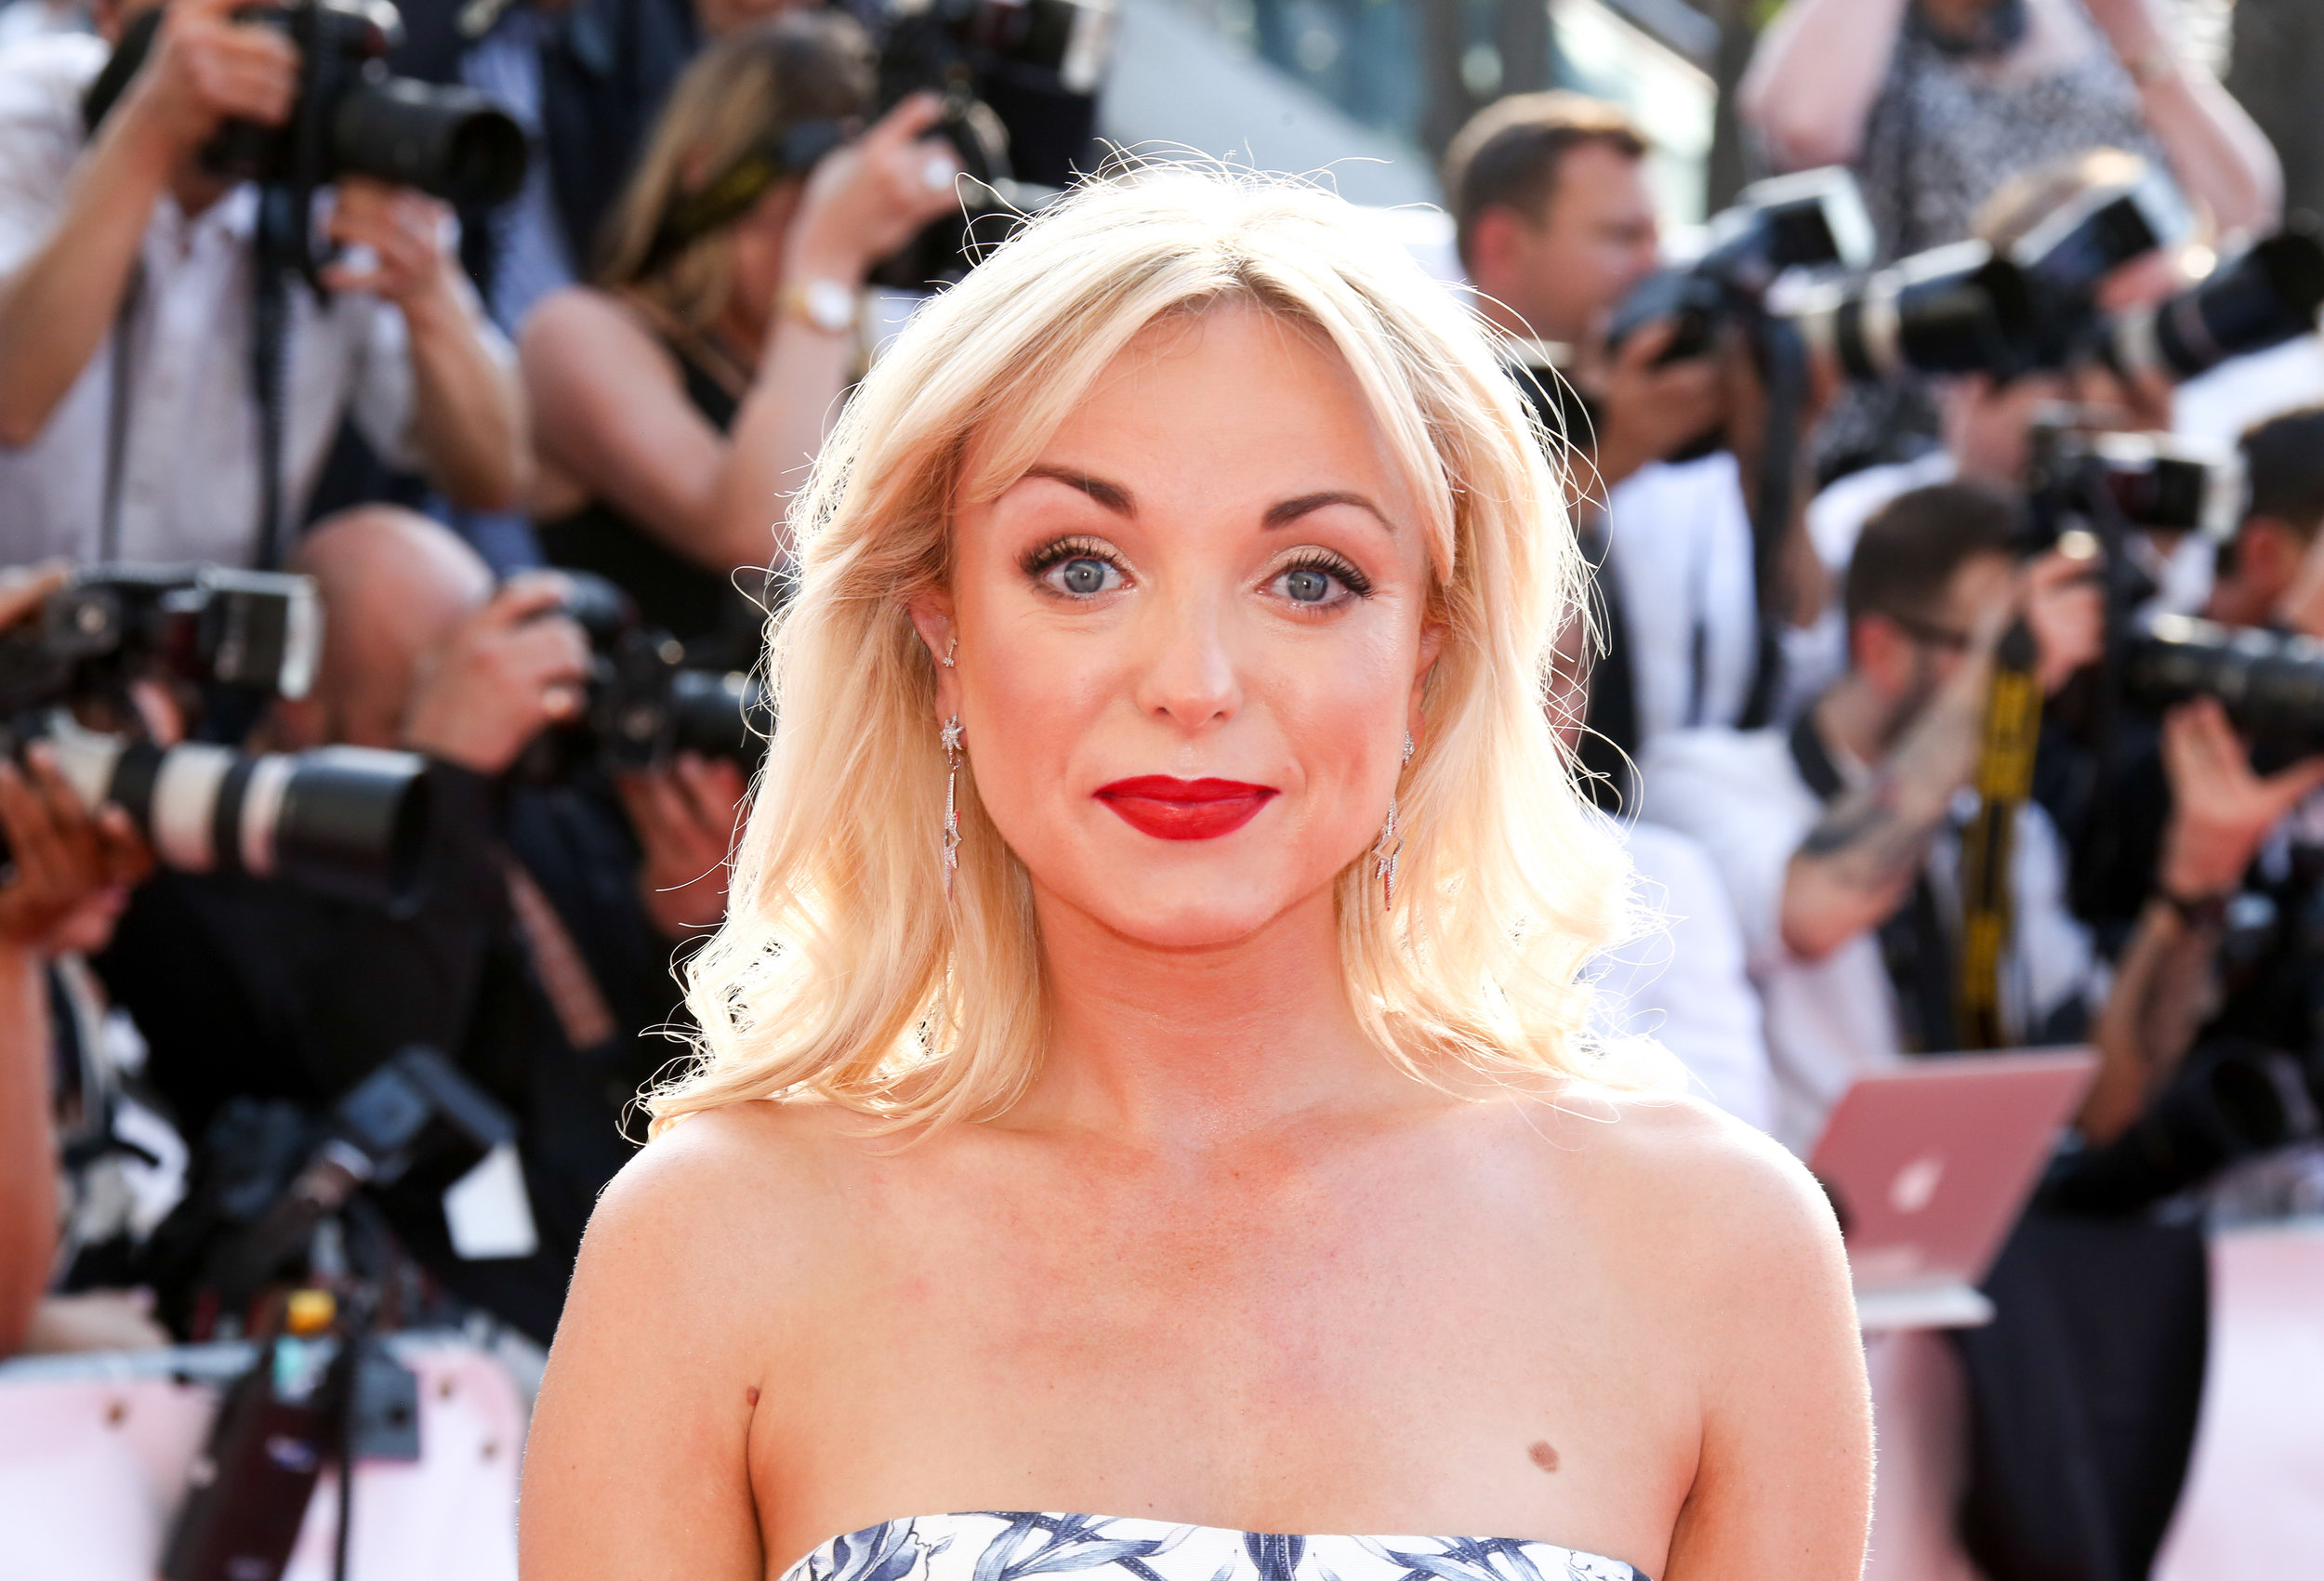 helen-george-actress-call-midwife.jpg